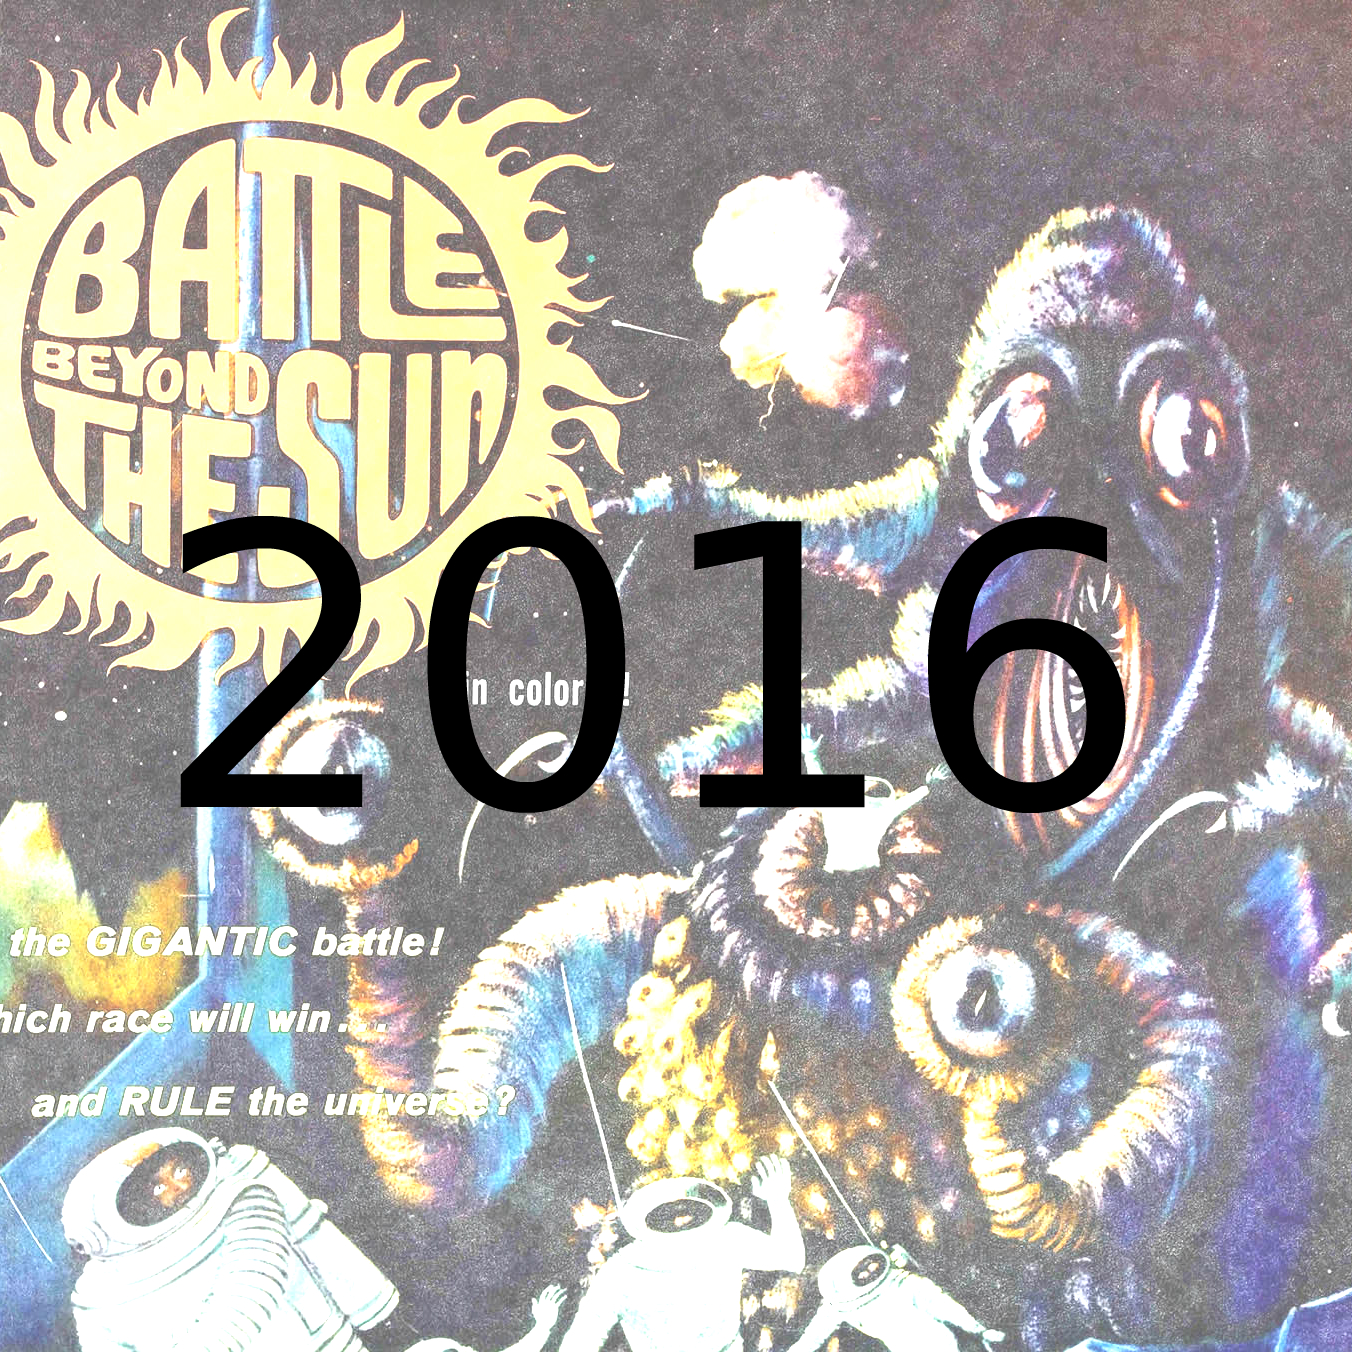 Links to events in 2016